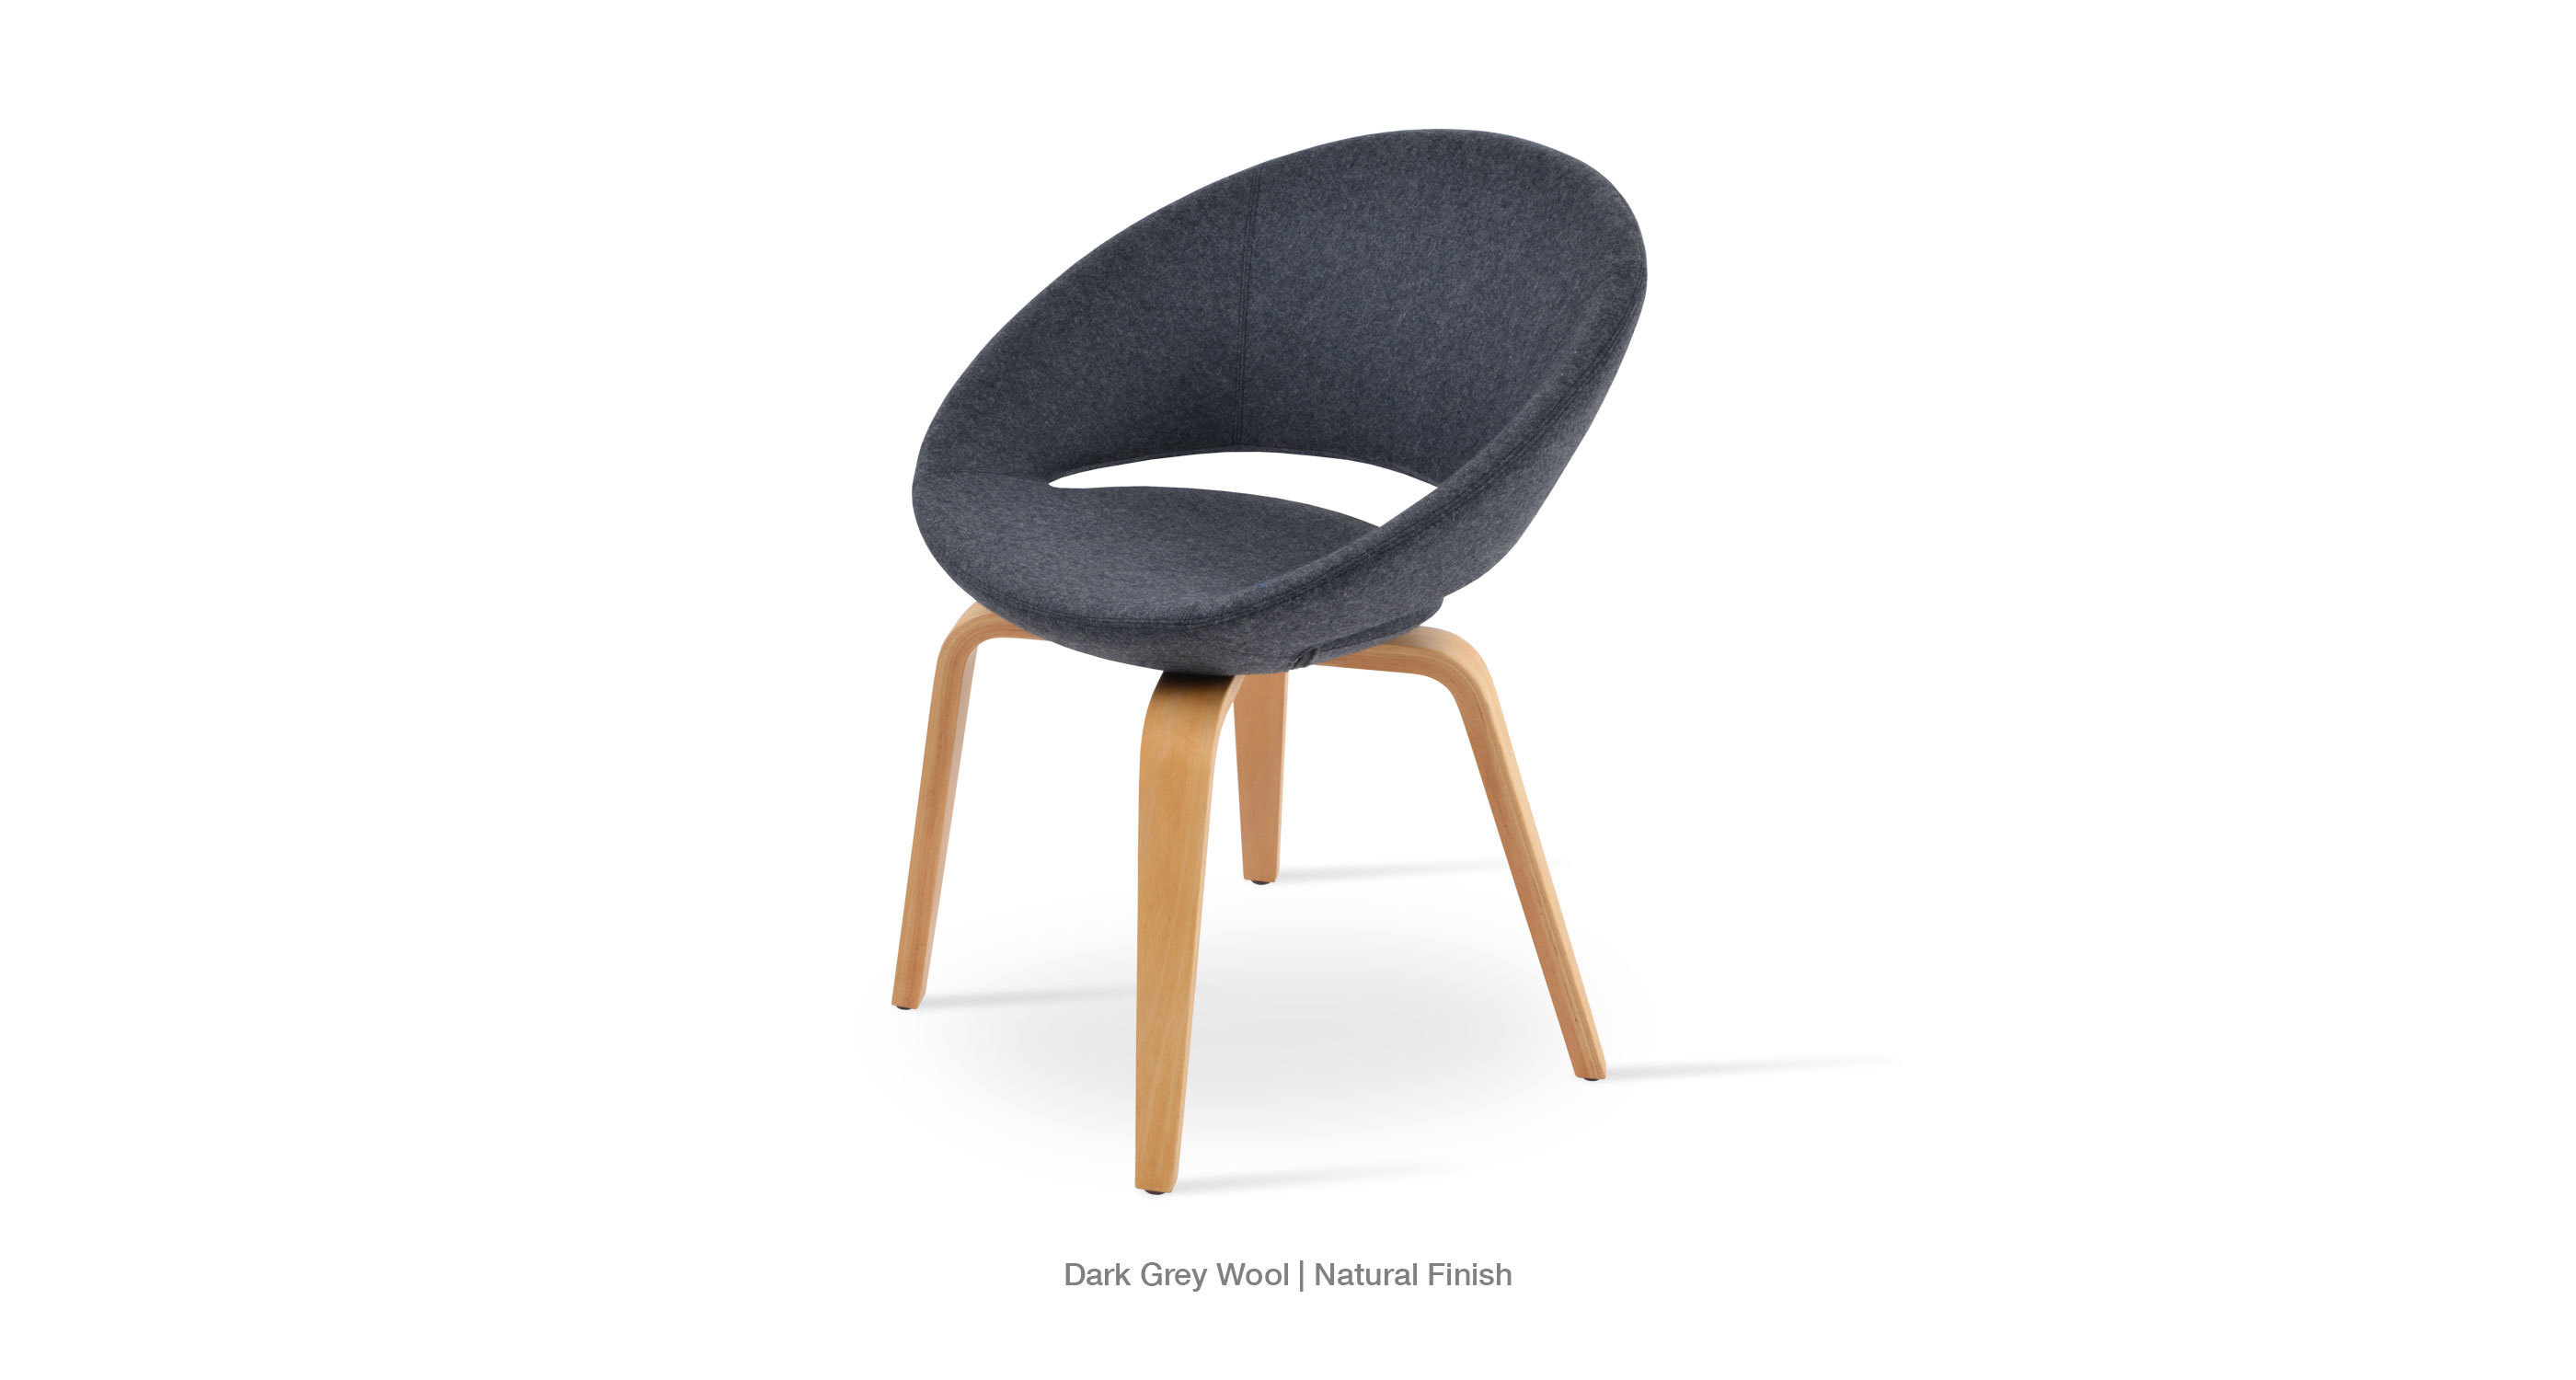 Crescent Plywood dark grey wool natural